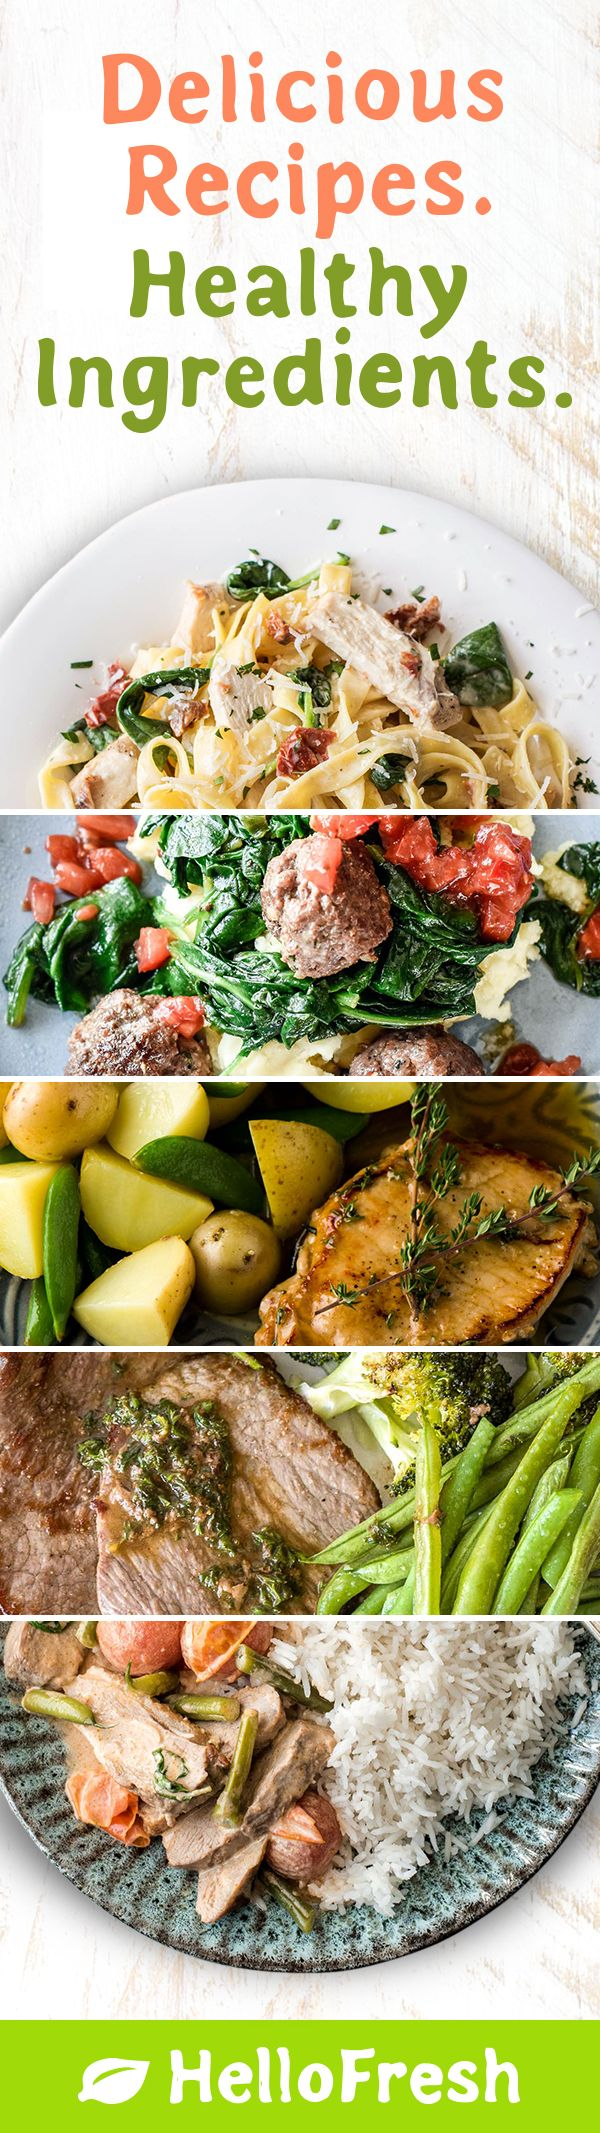 Found an exciting recipe on Google but can't be bothered to look for the ingredients? HelloFresh has got the planning and shopping covered, so you just have fun in the kitchen :) ➜ Use code HELLOPIN35 at checkout to save $35 on your 1st box. Ends 30/8/16.